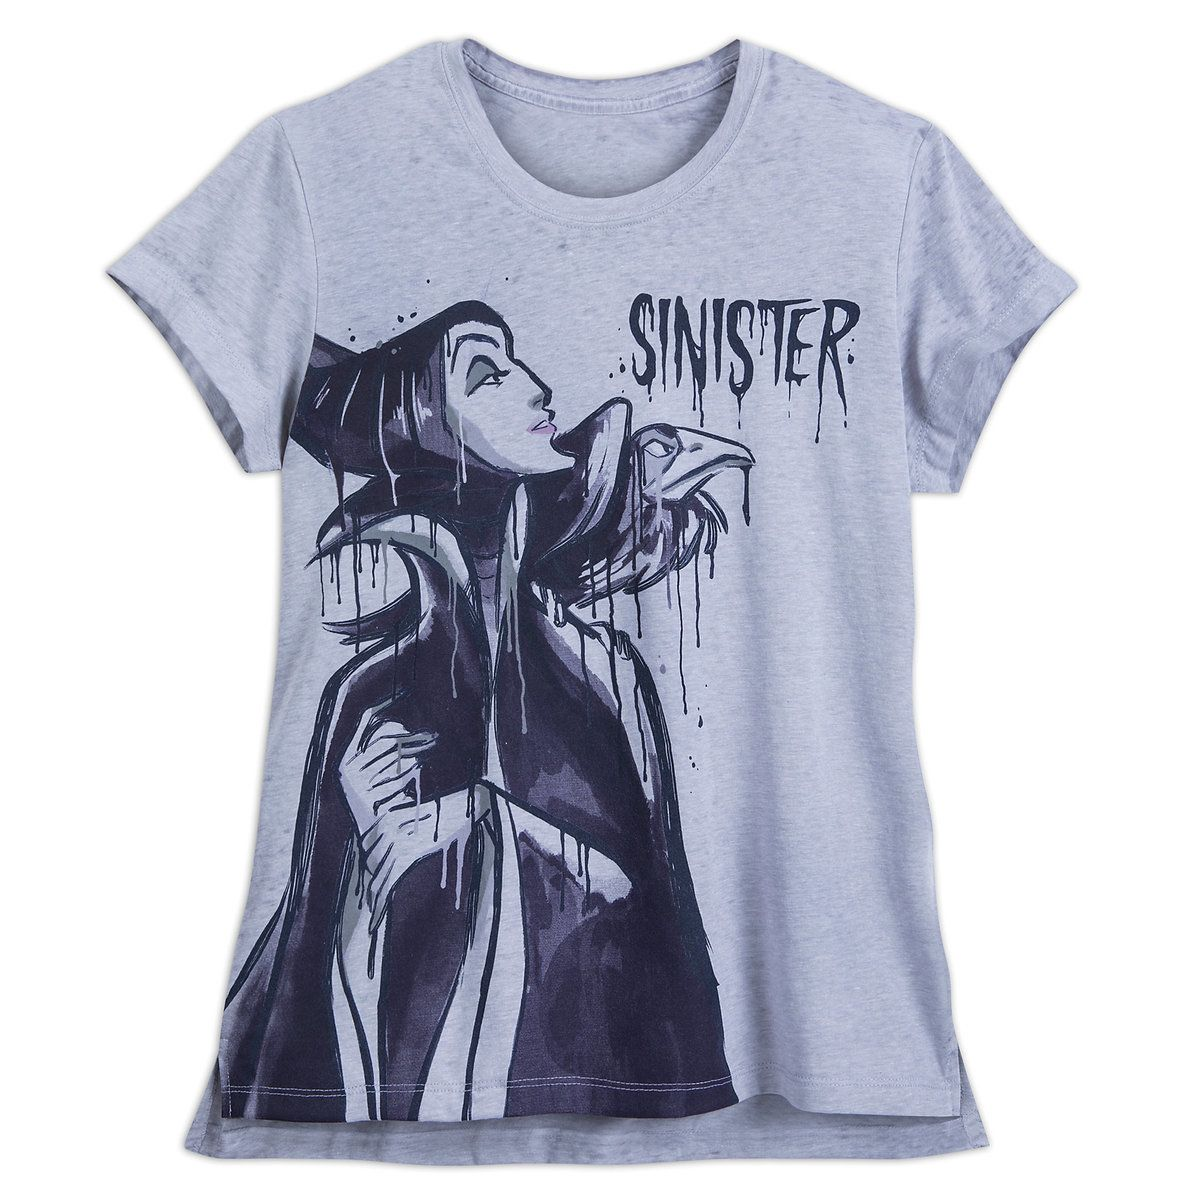 Product Image Of Maleficent T Shirt For Women Sleeping